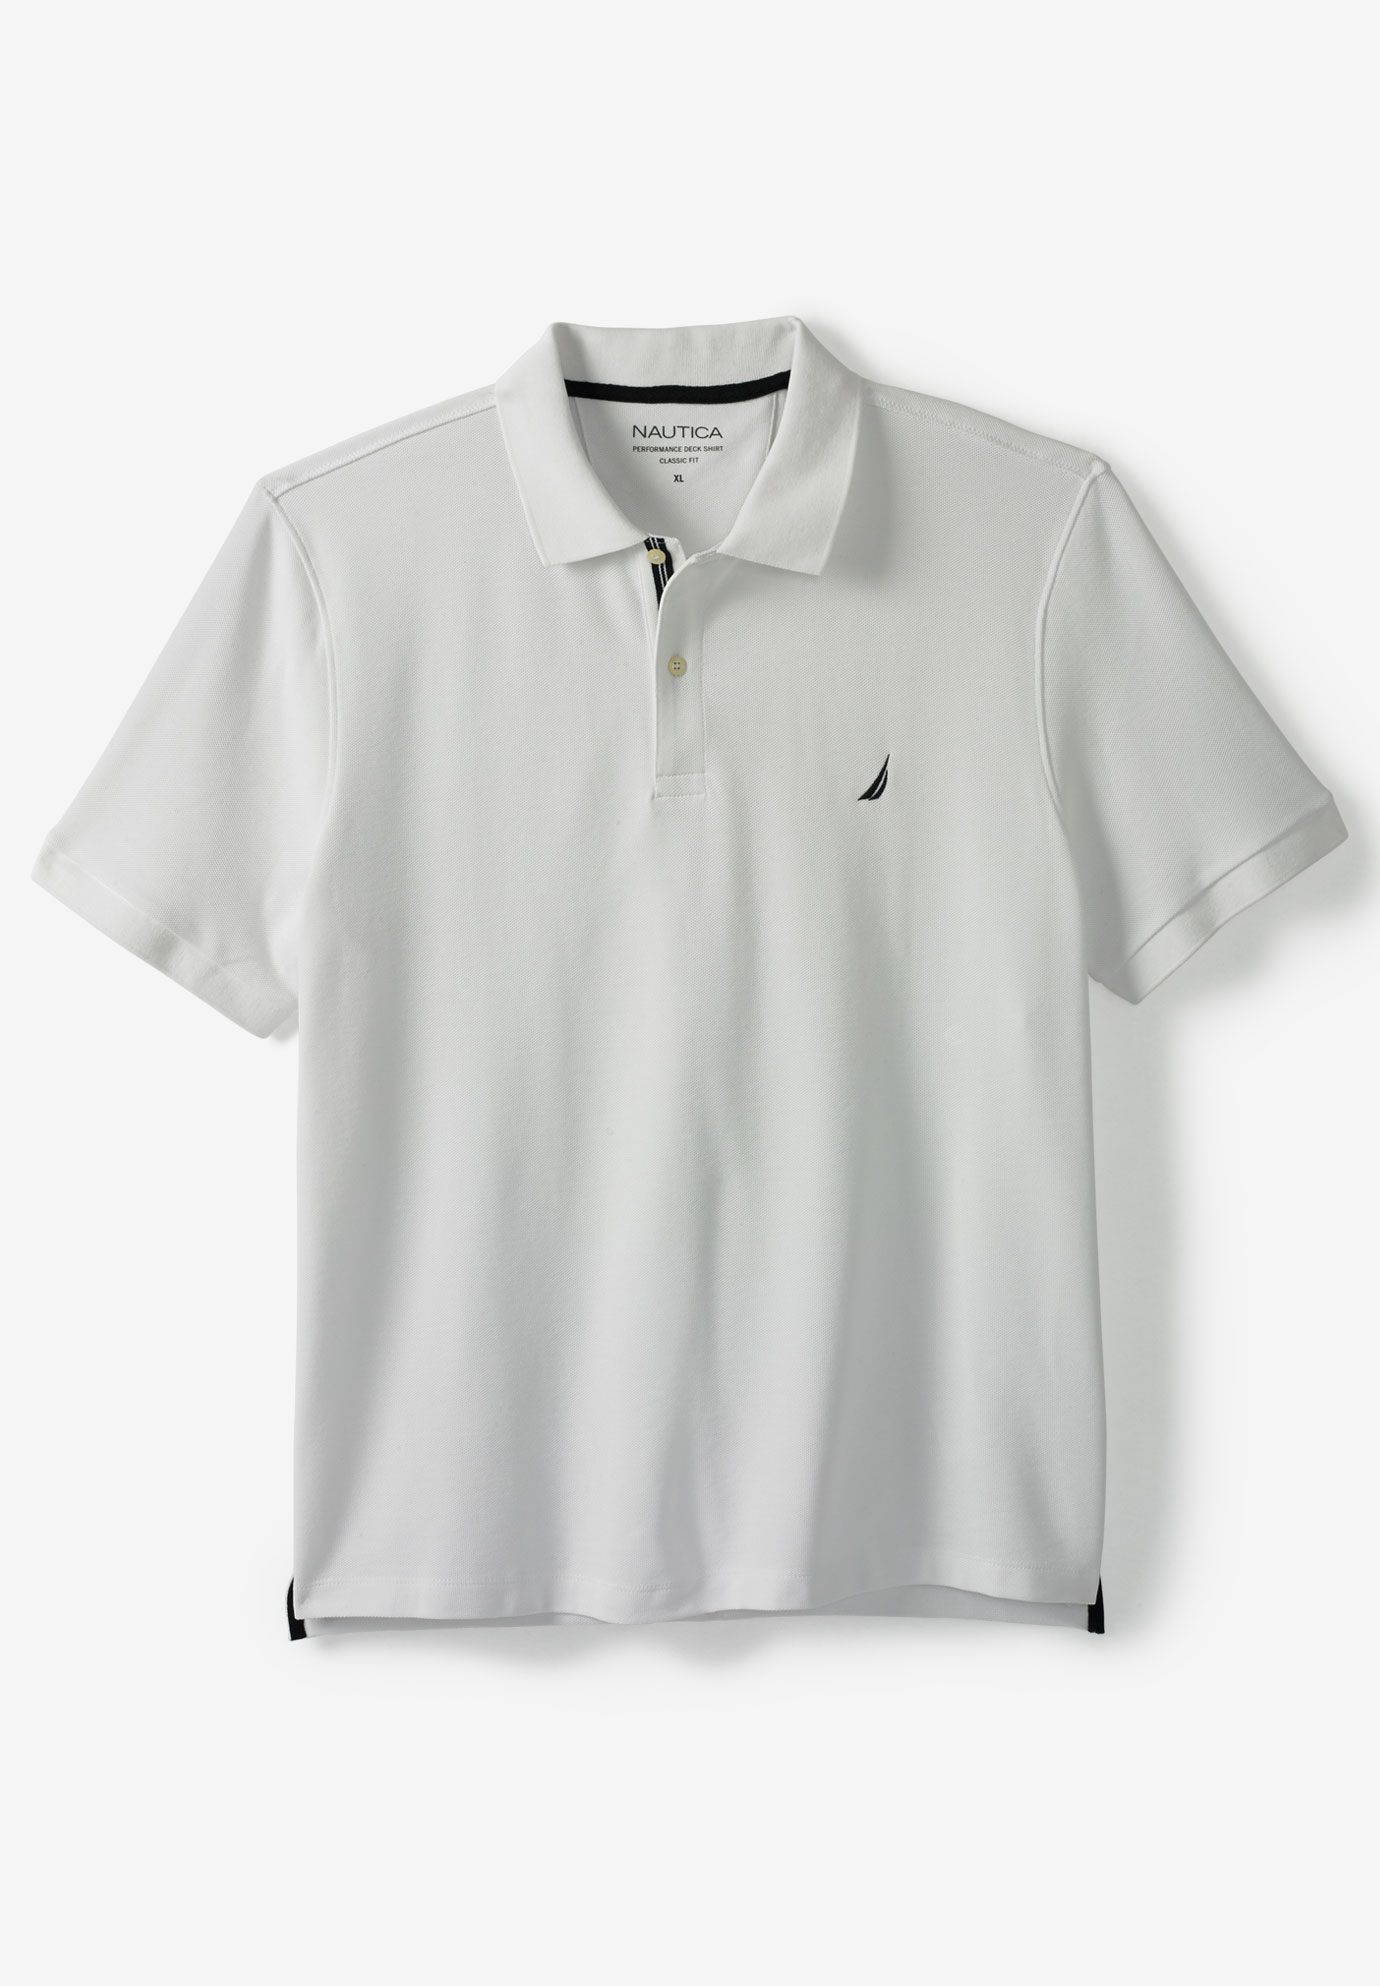 Nautica® Performance Piqué Polo Shirt,